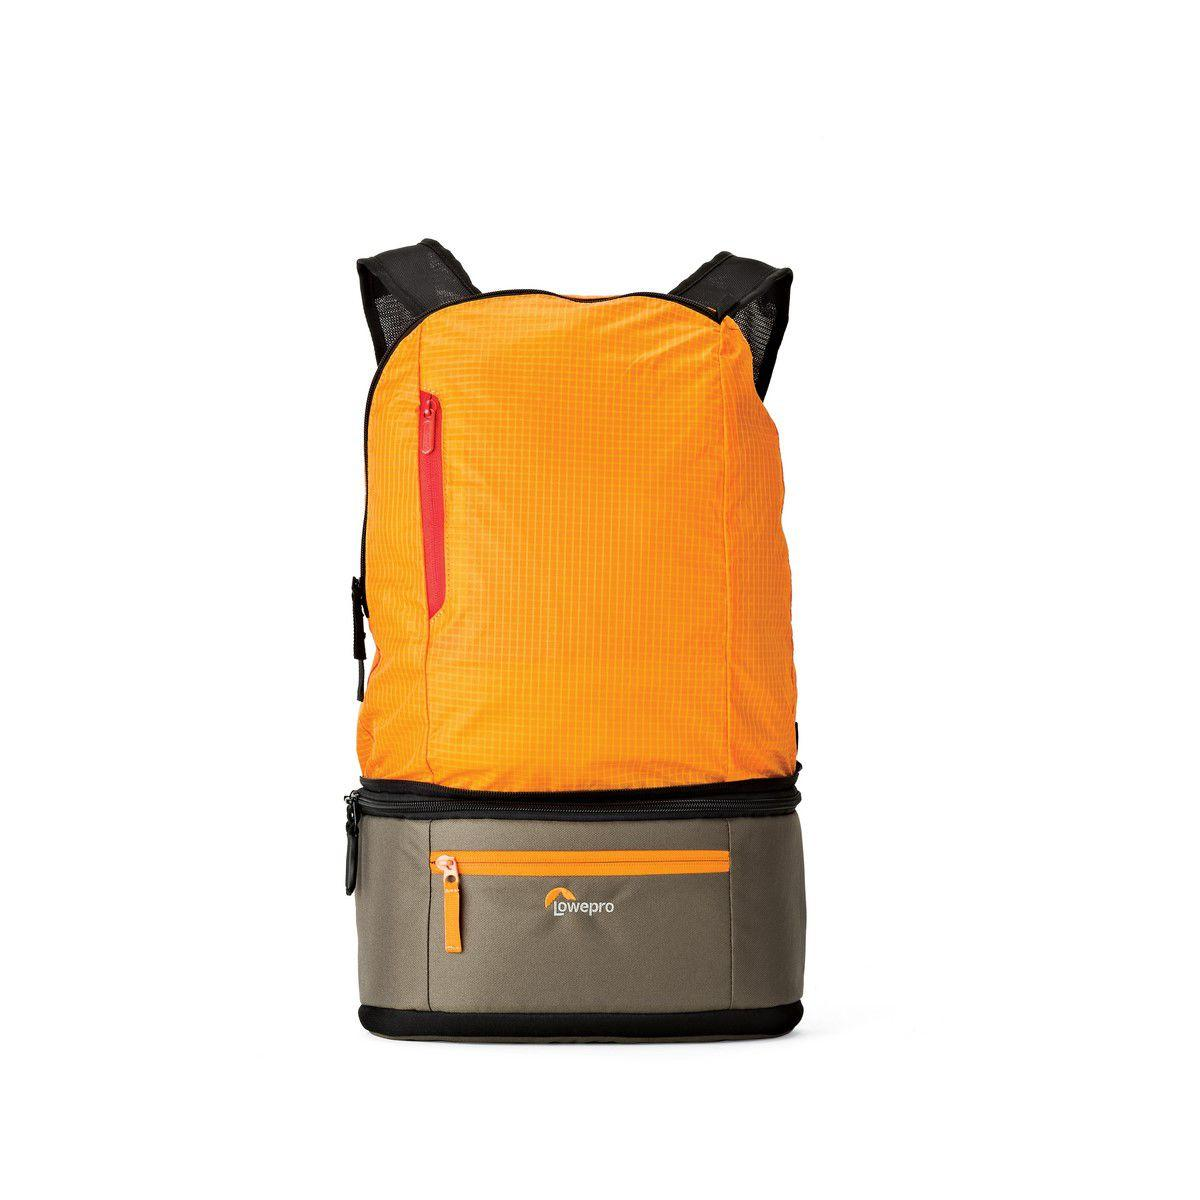 Sac à dos lowepro passeport duo orange - 20% de remise immédiate avec le code : multi20